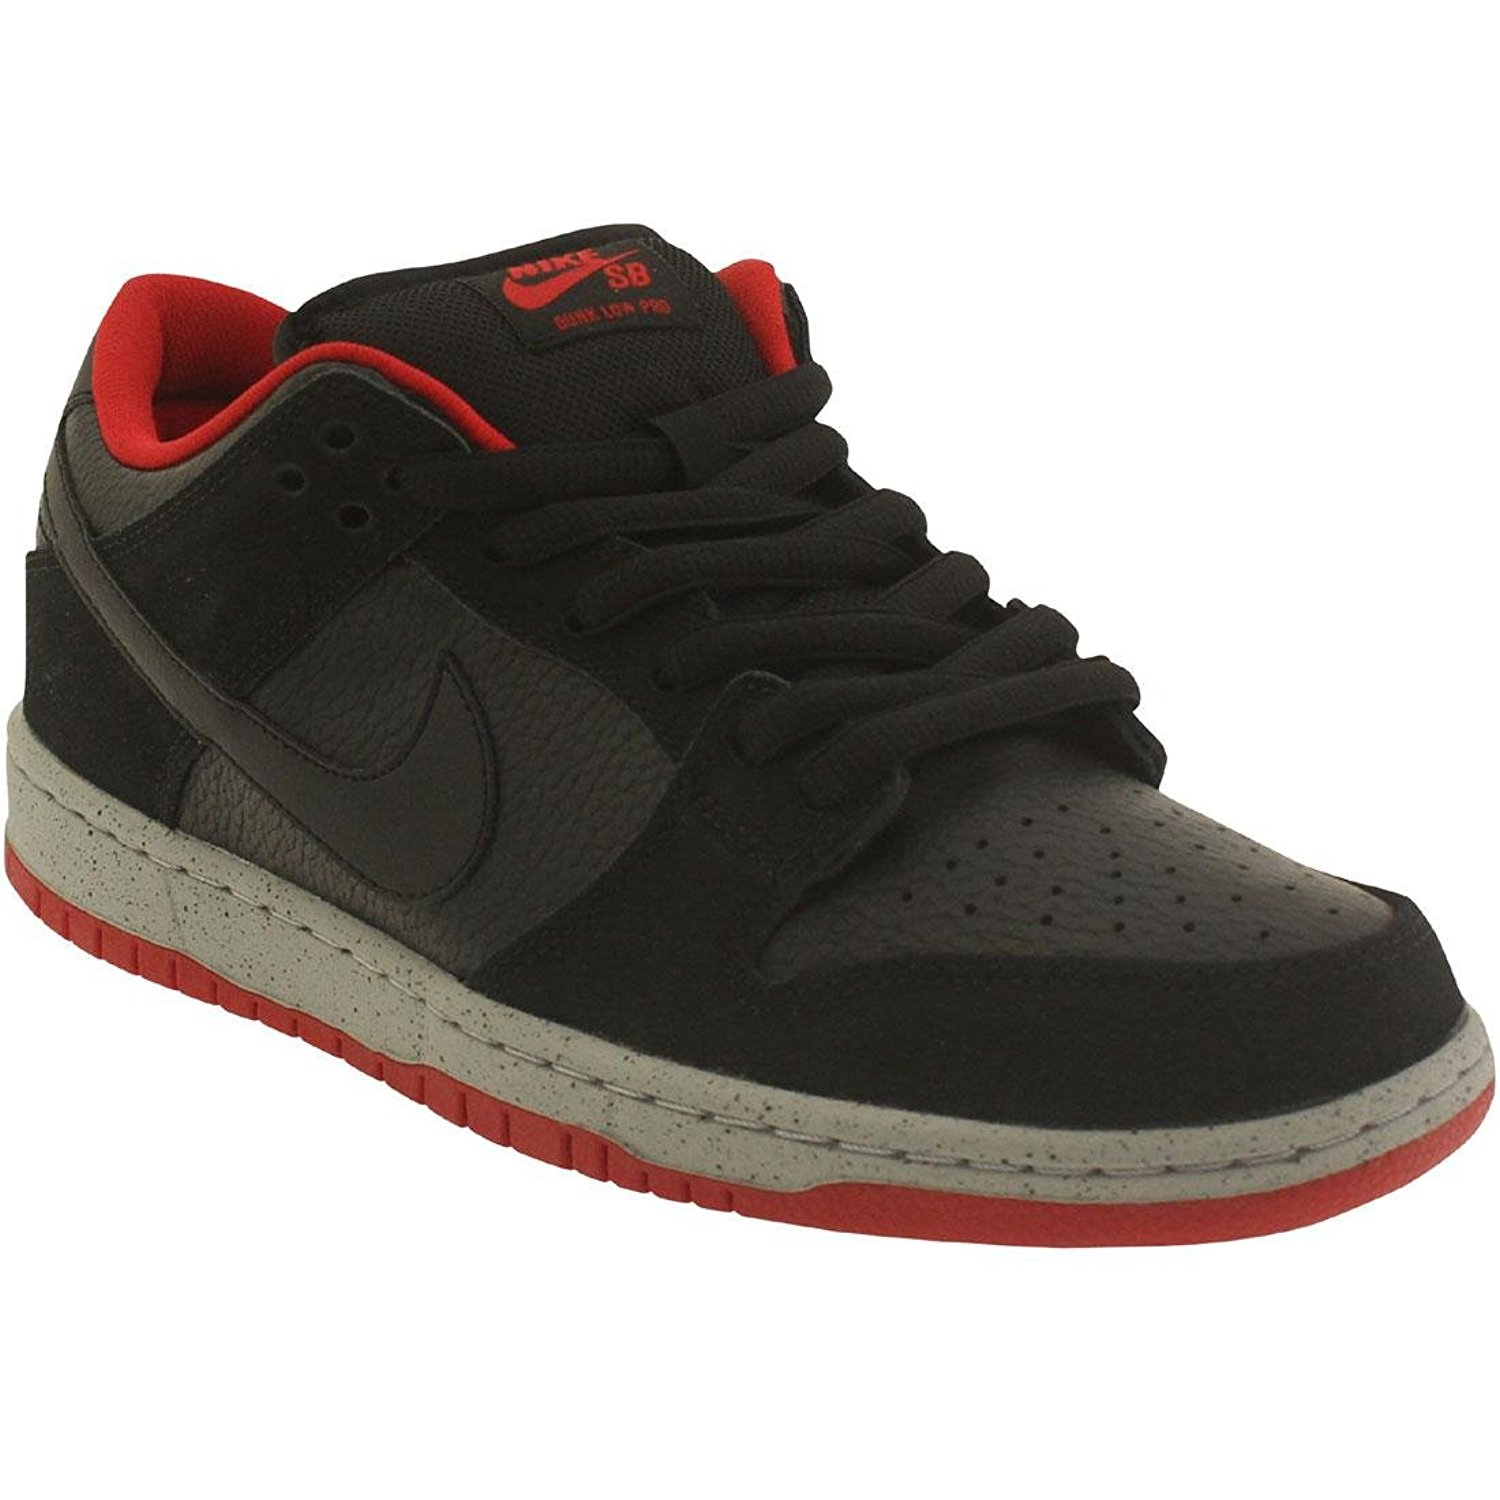 low priced 4e783 a44fb Cheap Nike Sb Low, find Nike Sb Low deals on line at Alibaba.com